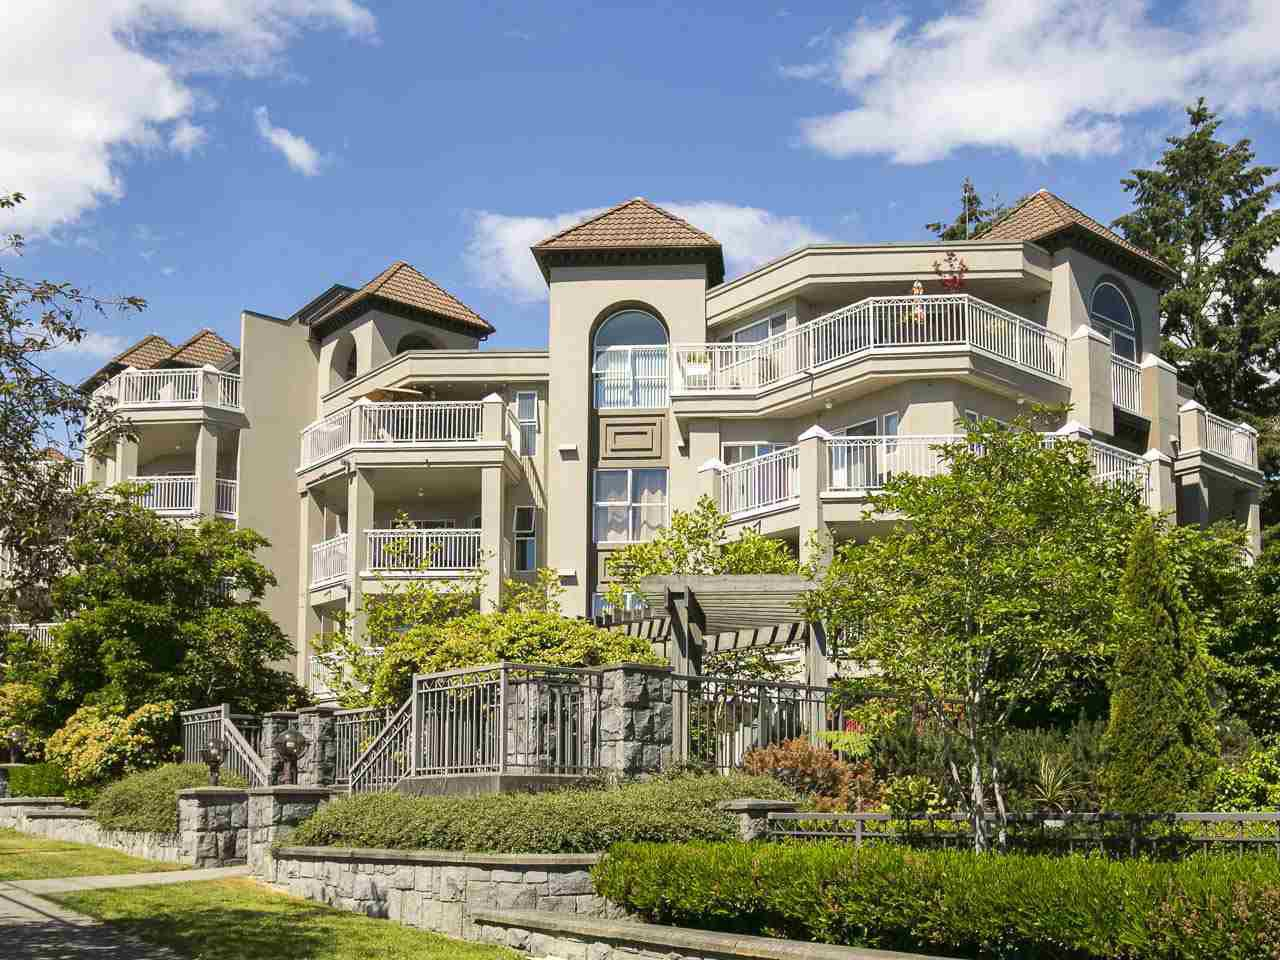 Main Photo: 402 519 TWELFTH STREET in New Westminster: Uptown NW Condo for sale : MLS®# R2070097